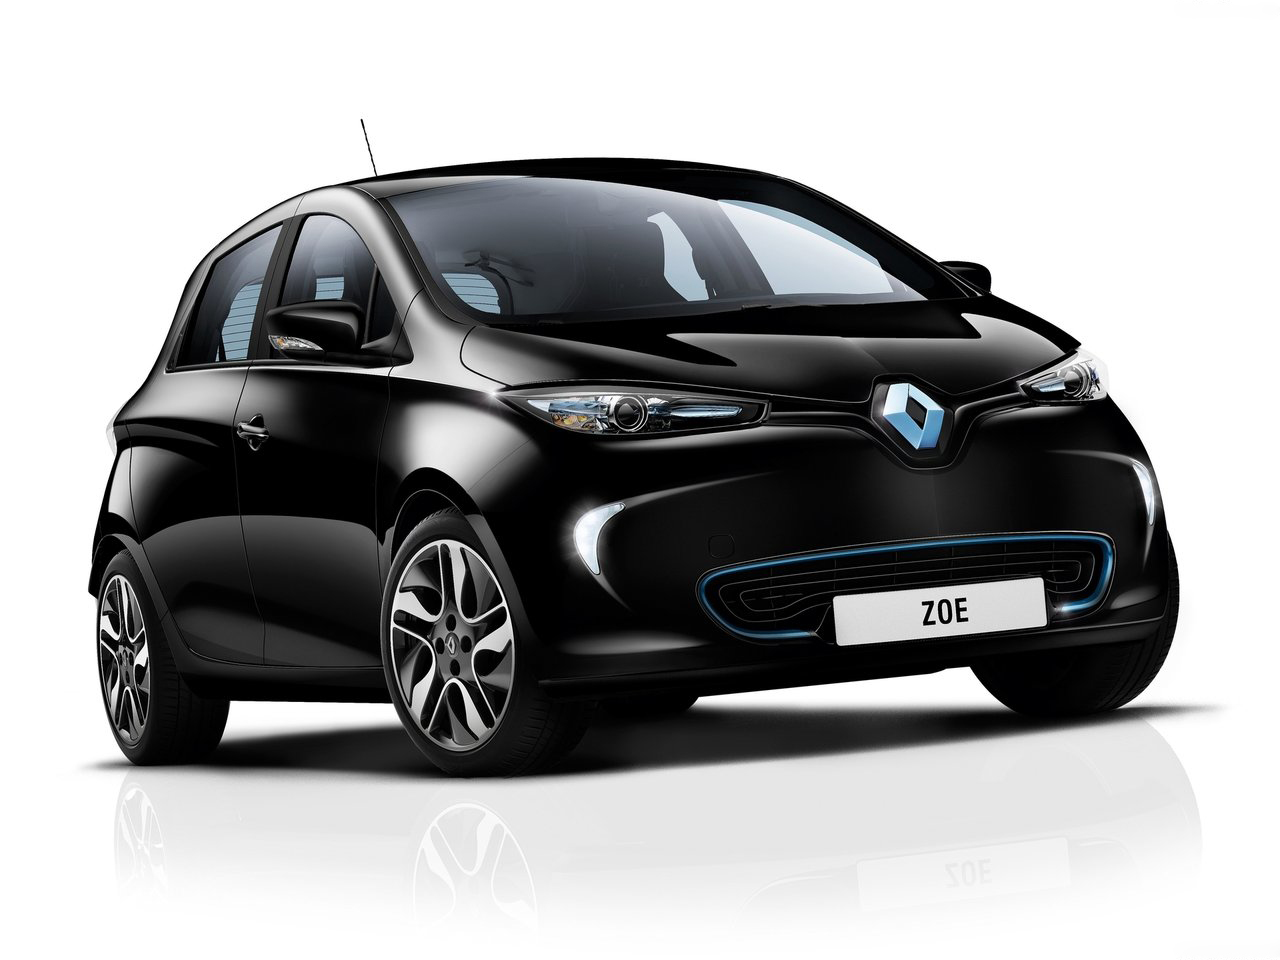 nouvelle renault zoe renault epernon. Black Bedroom Furniture Sets. Home Design Ideas